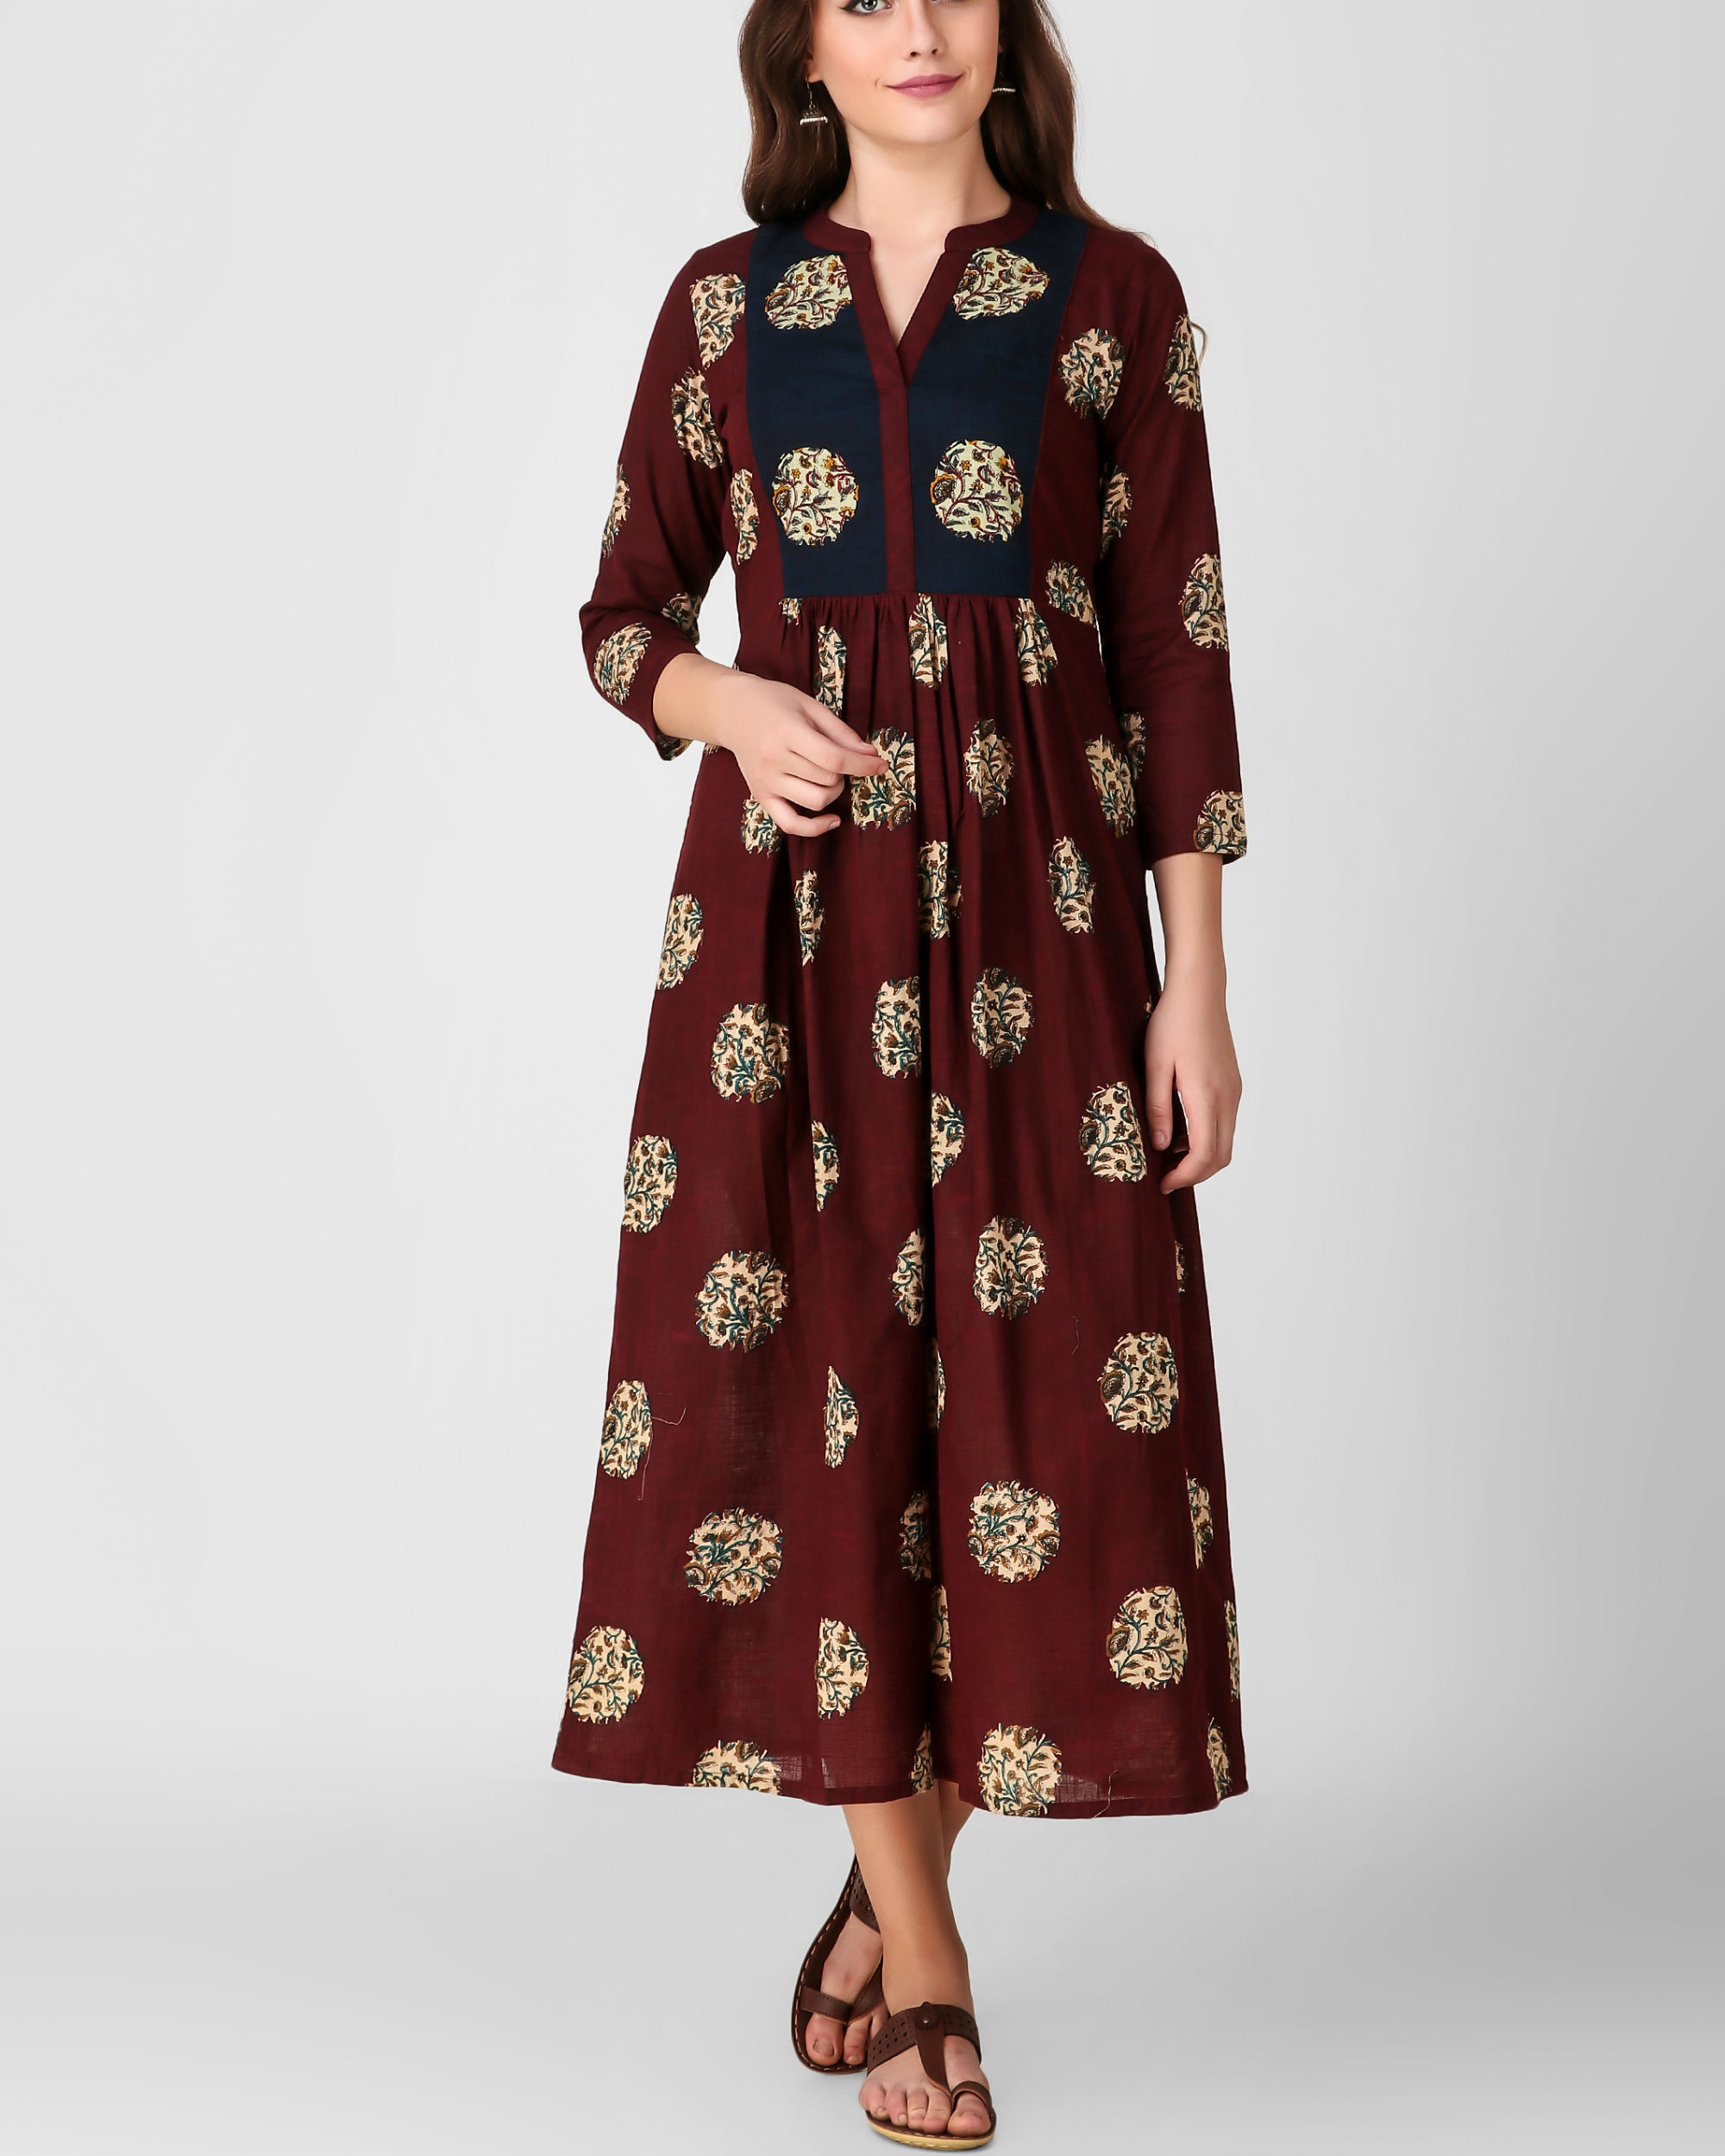 Blue yoke kalamkari dress